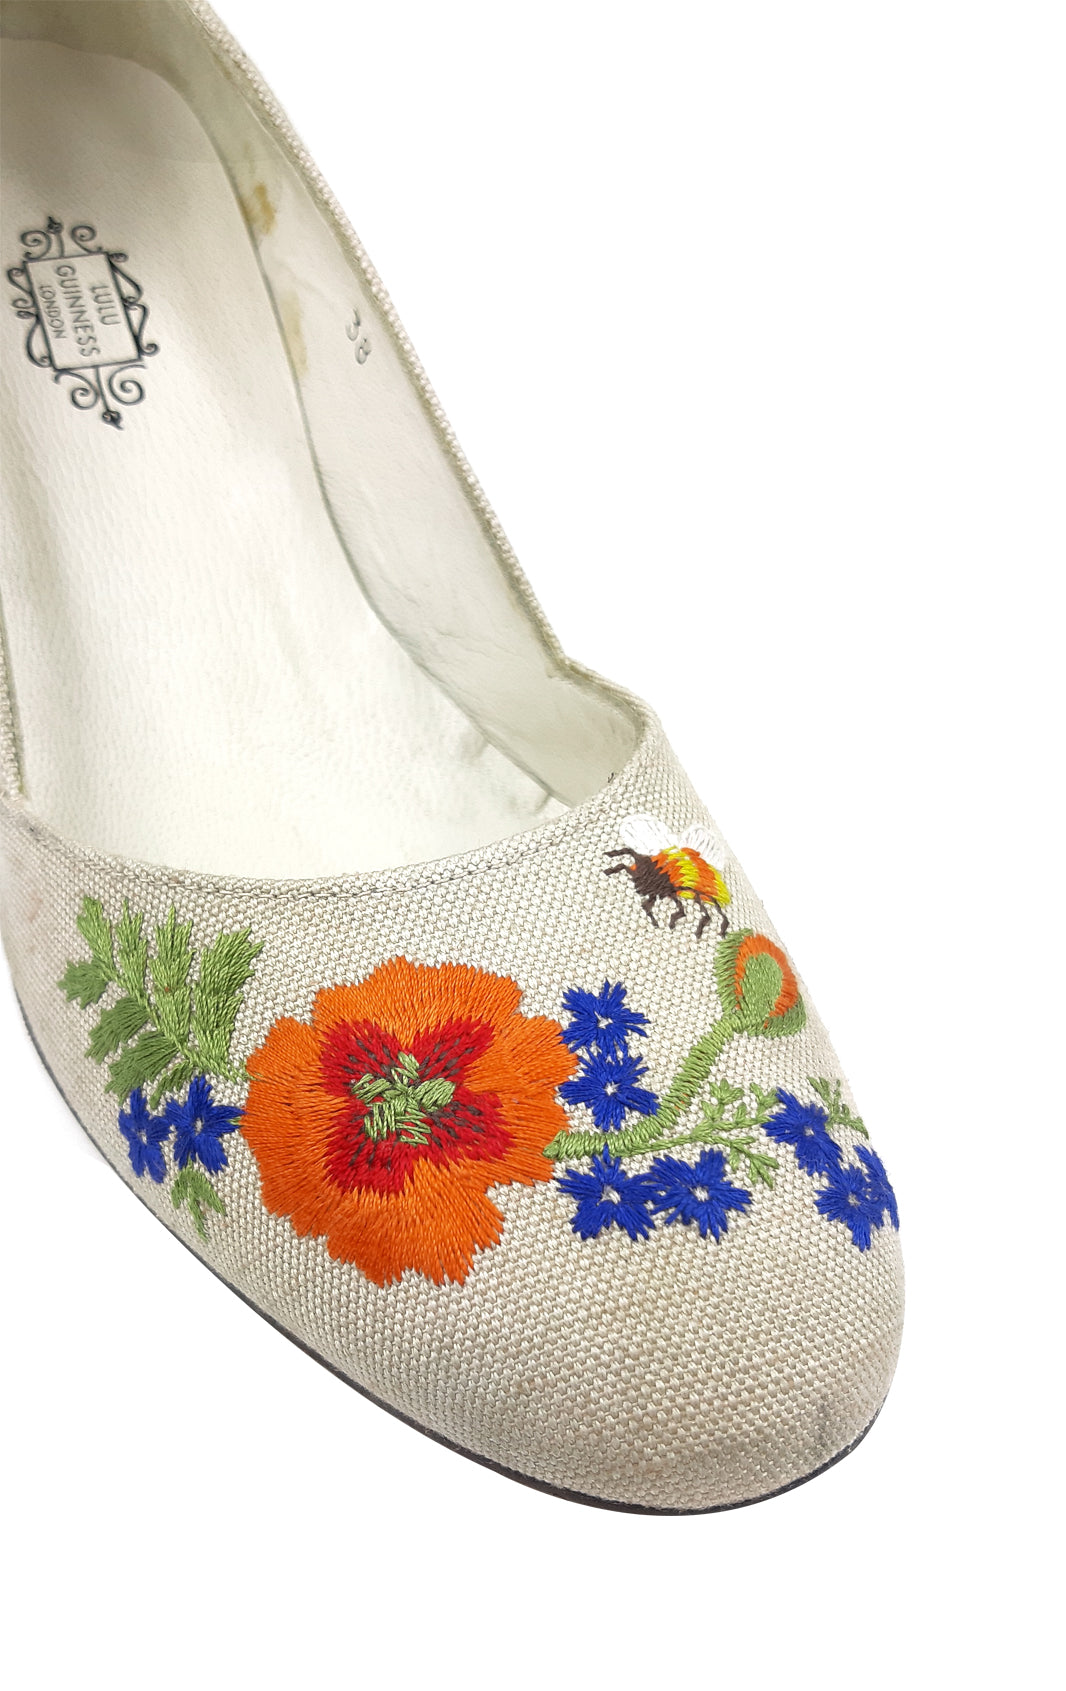 Lulu Guiness Beige Platform Cloth Shoes with Embroidered Flowers Size 38 (EU)